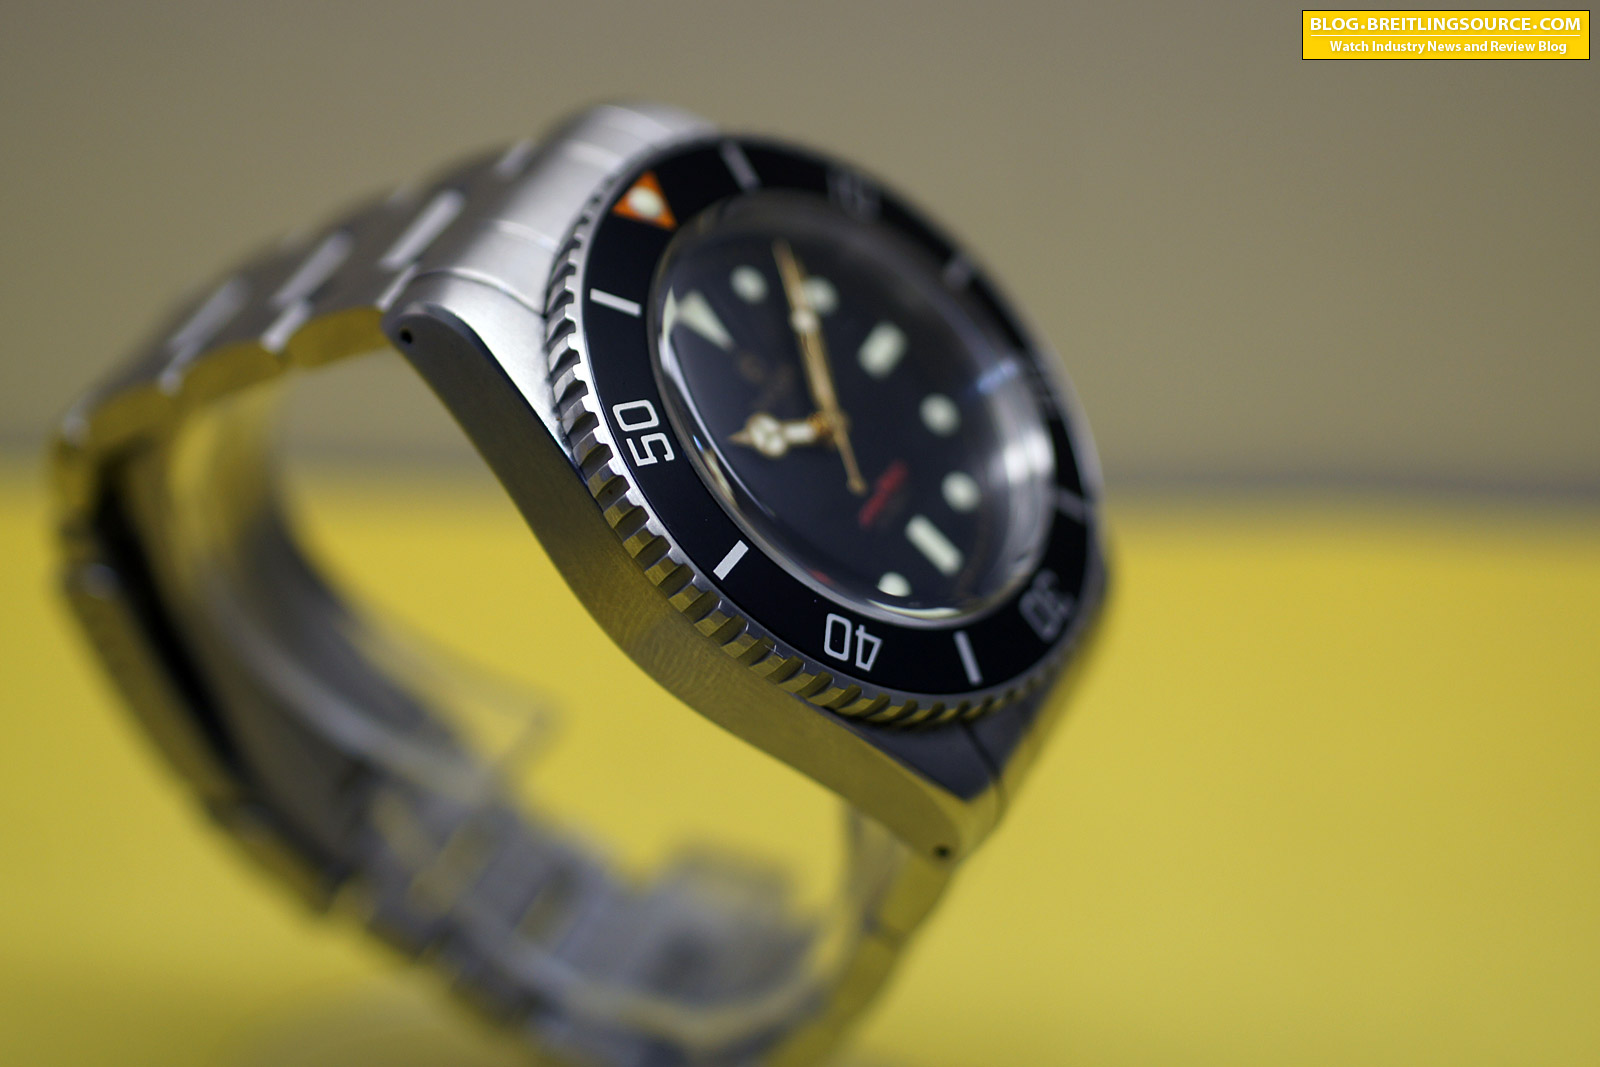 The breitling watch blog raven vintage 40mm no date review - 40mm dive watch ...